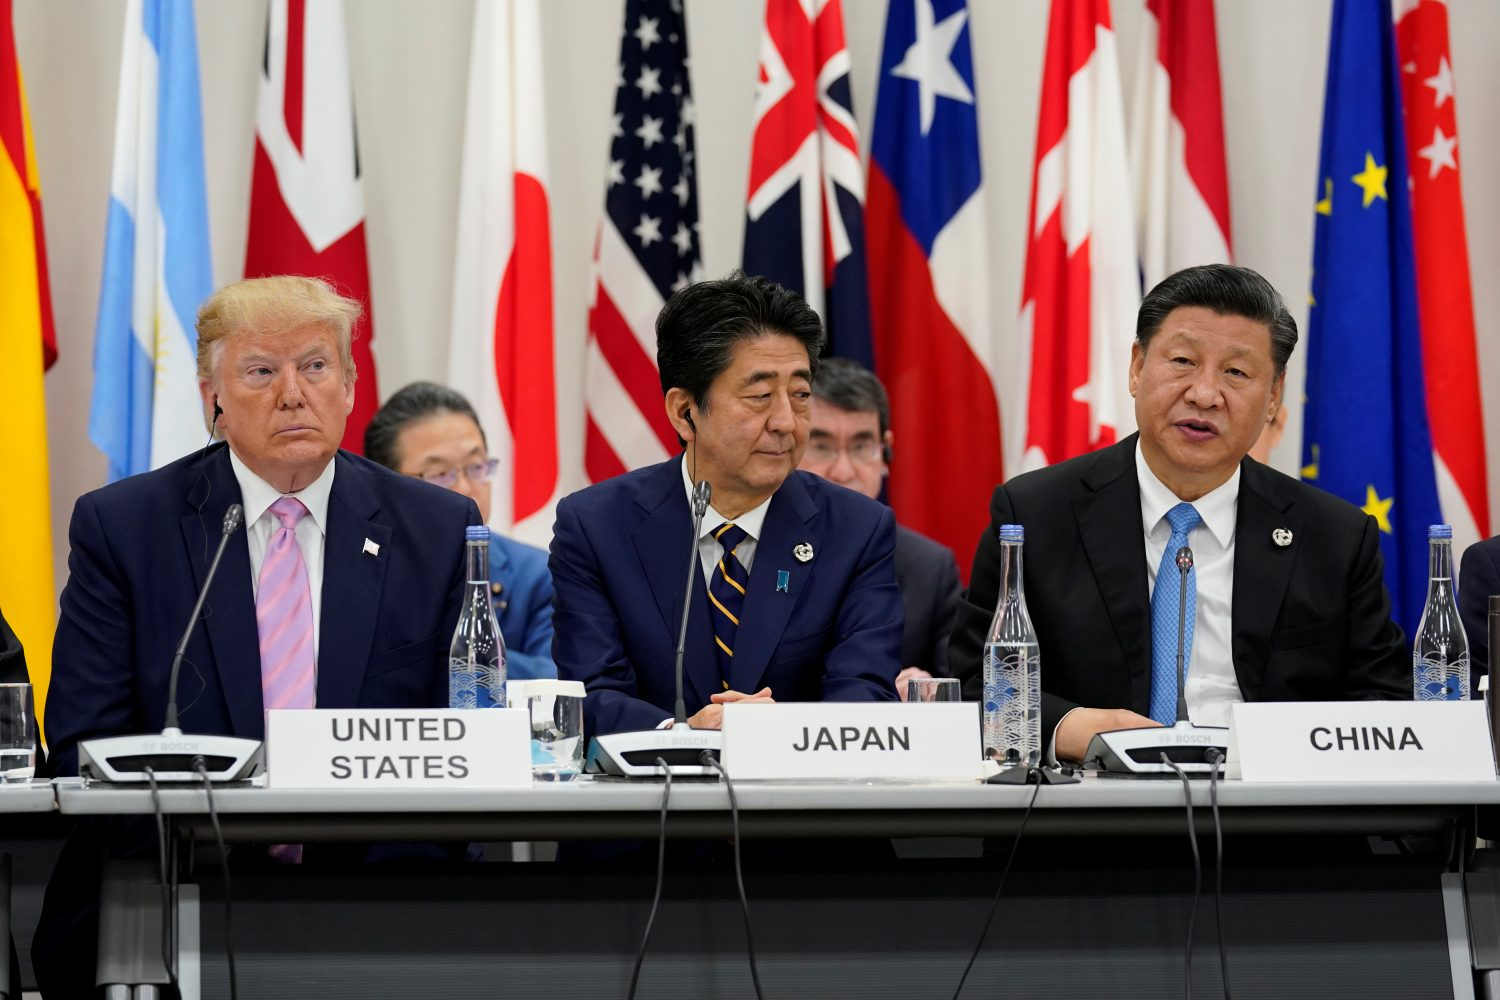 Japan's Prime Minister Shinzo Abe is flanked by U.S. President Donald Trump and China's President Xi Jinping during a meeting at the G20 leaders summit in Osaka, Japan, June 28, 2019. REUTERS/Kevin Lamarque